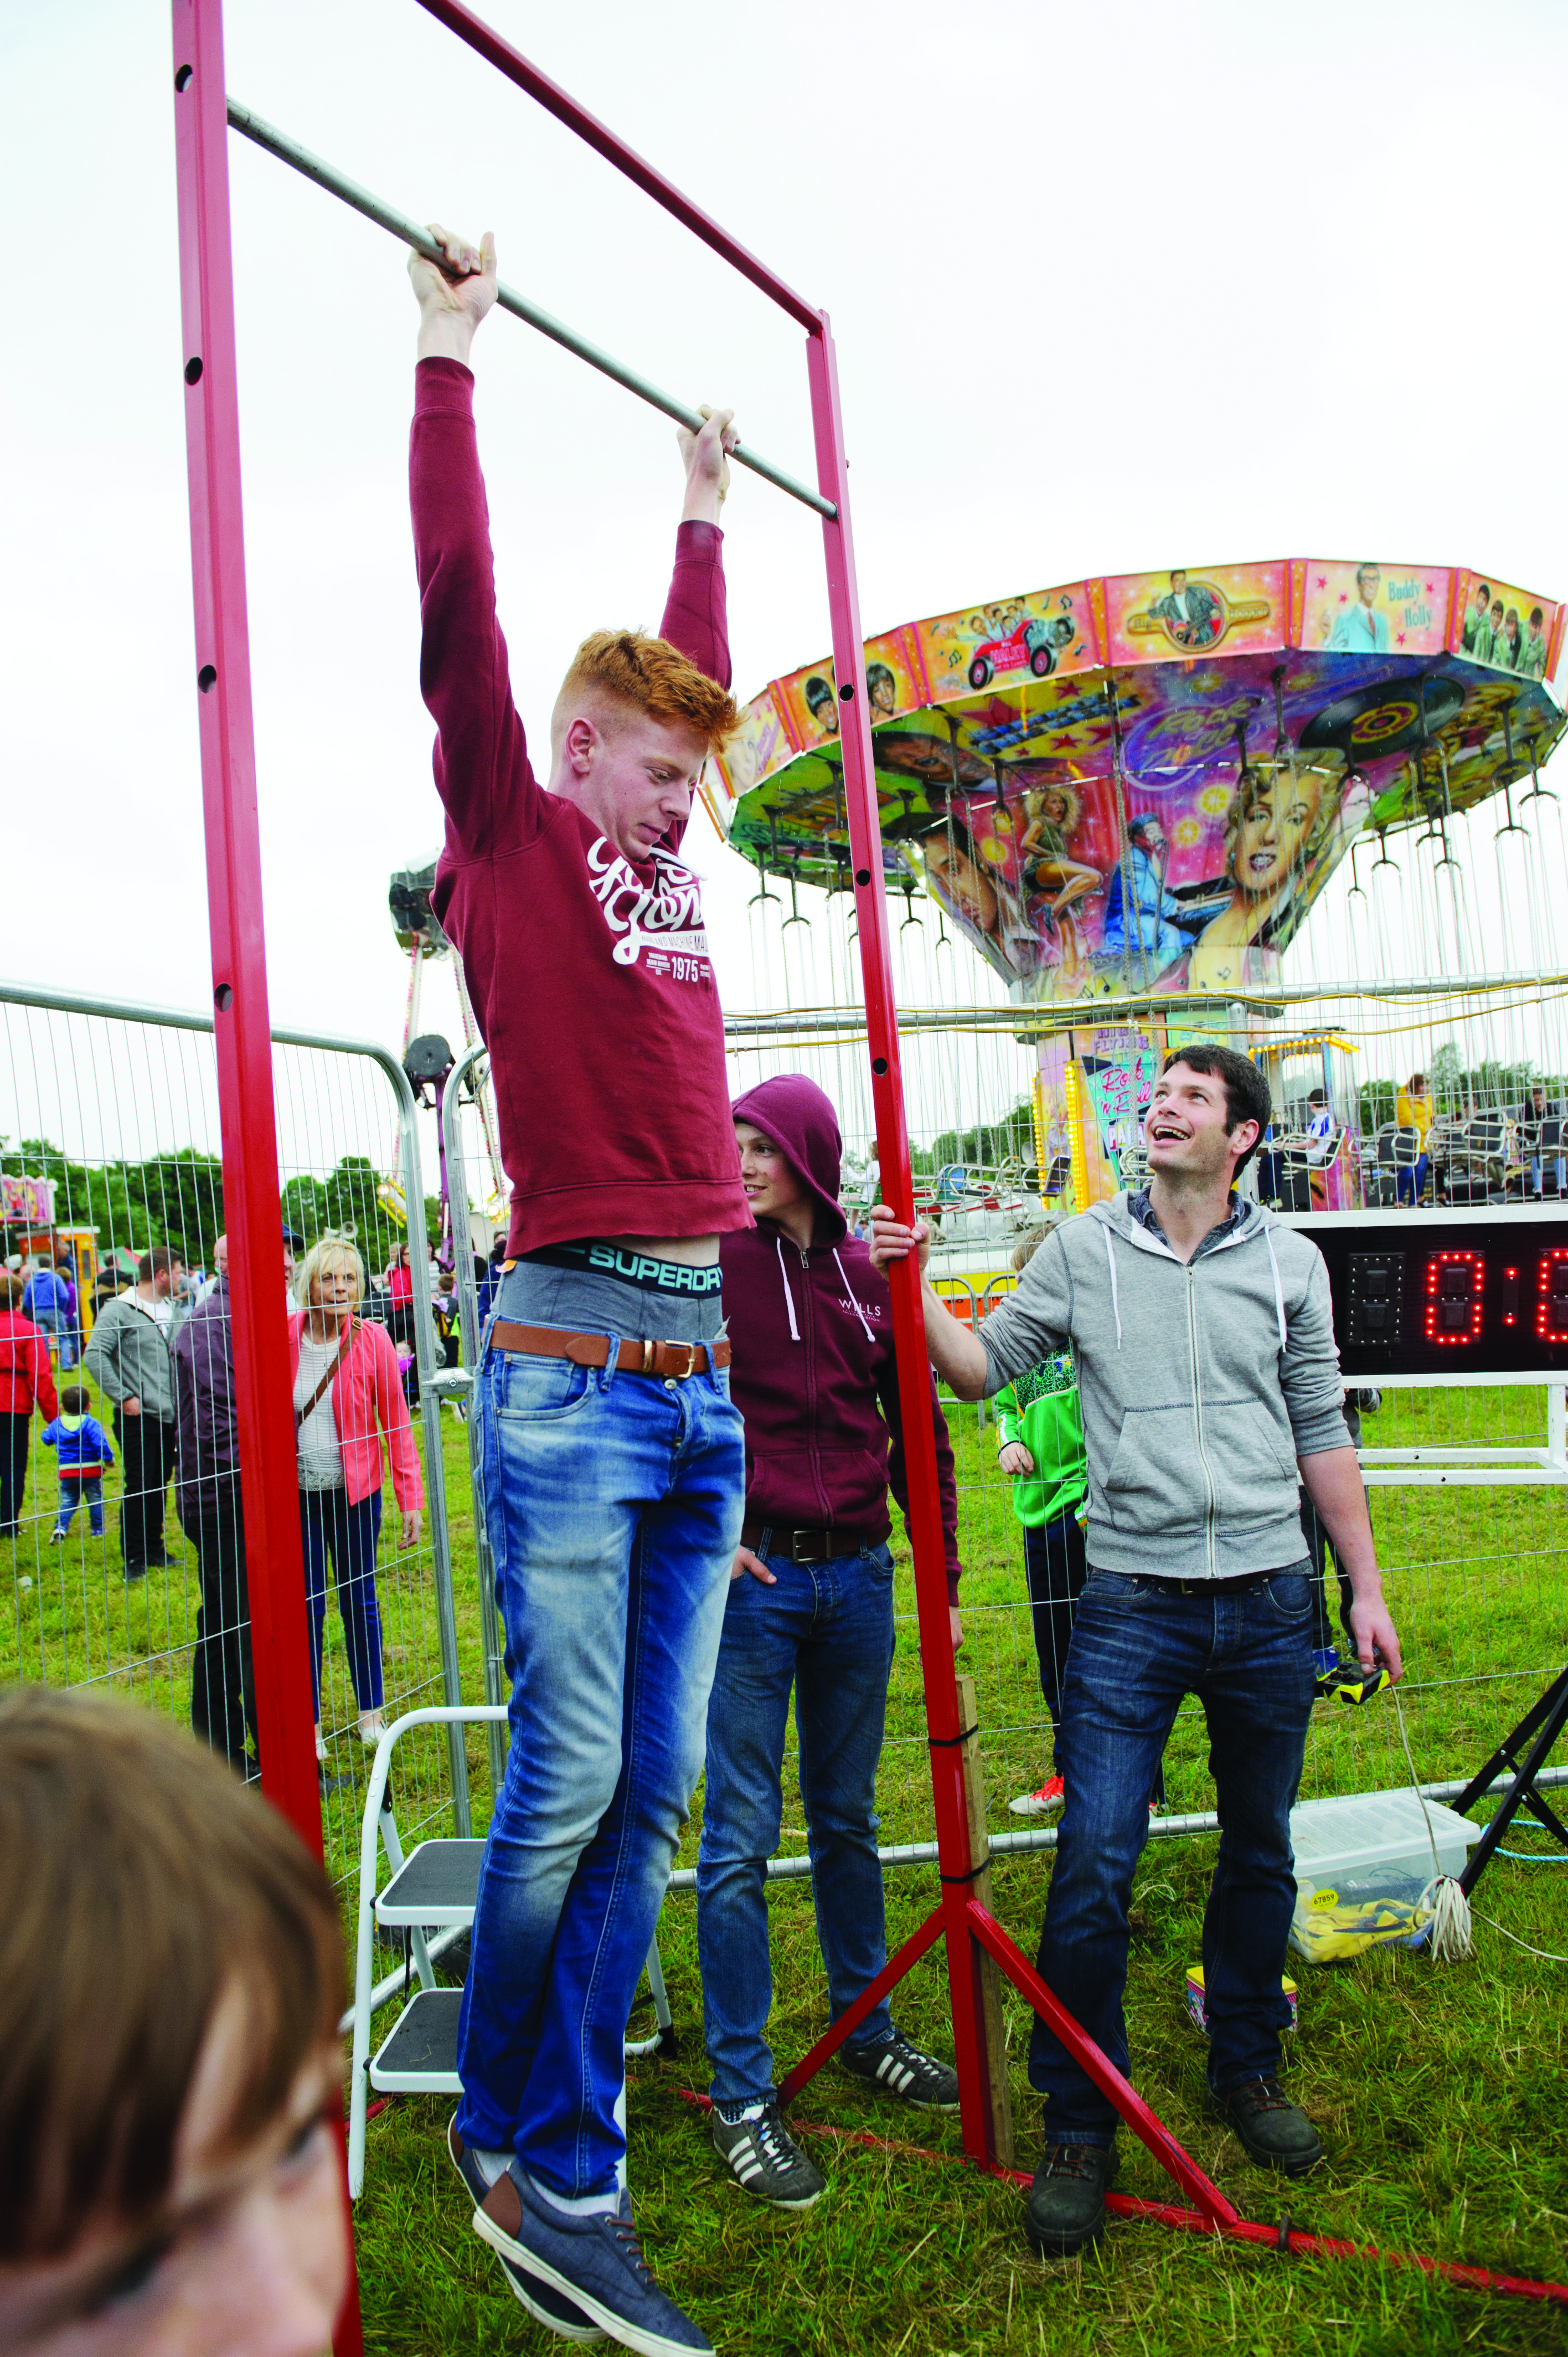 One of the competitors in the Hang Time competition during the day. ©Rory Geary/The Northern Standard